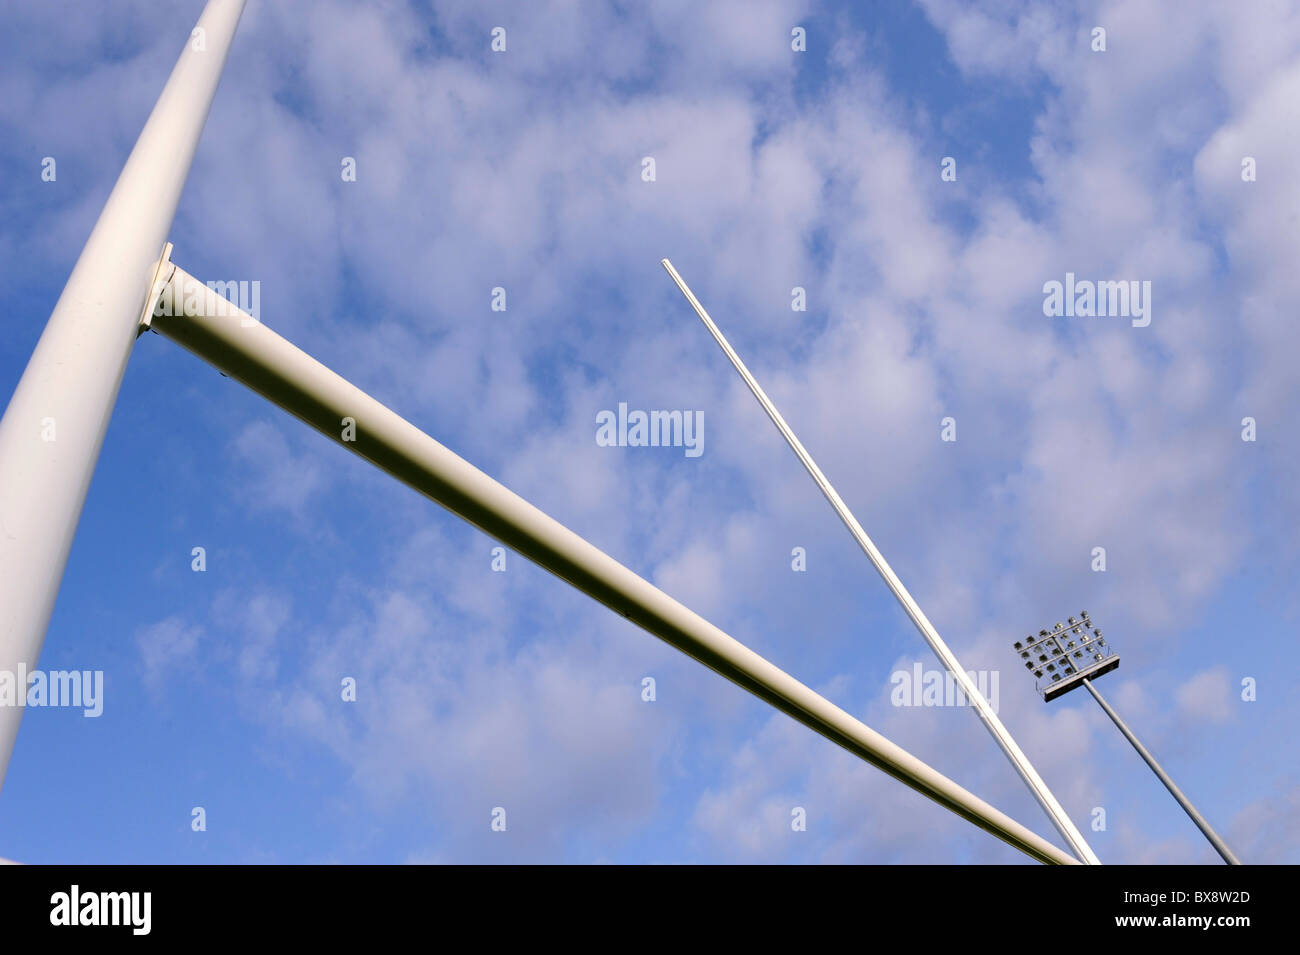 Rugby goalpost on blue sky - Stock Image